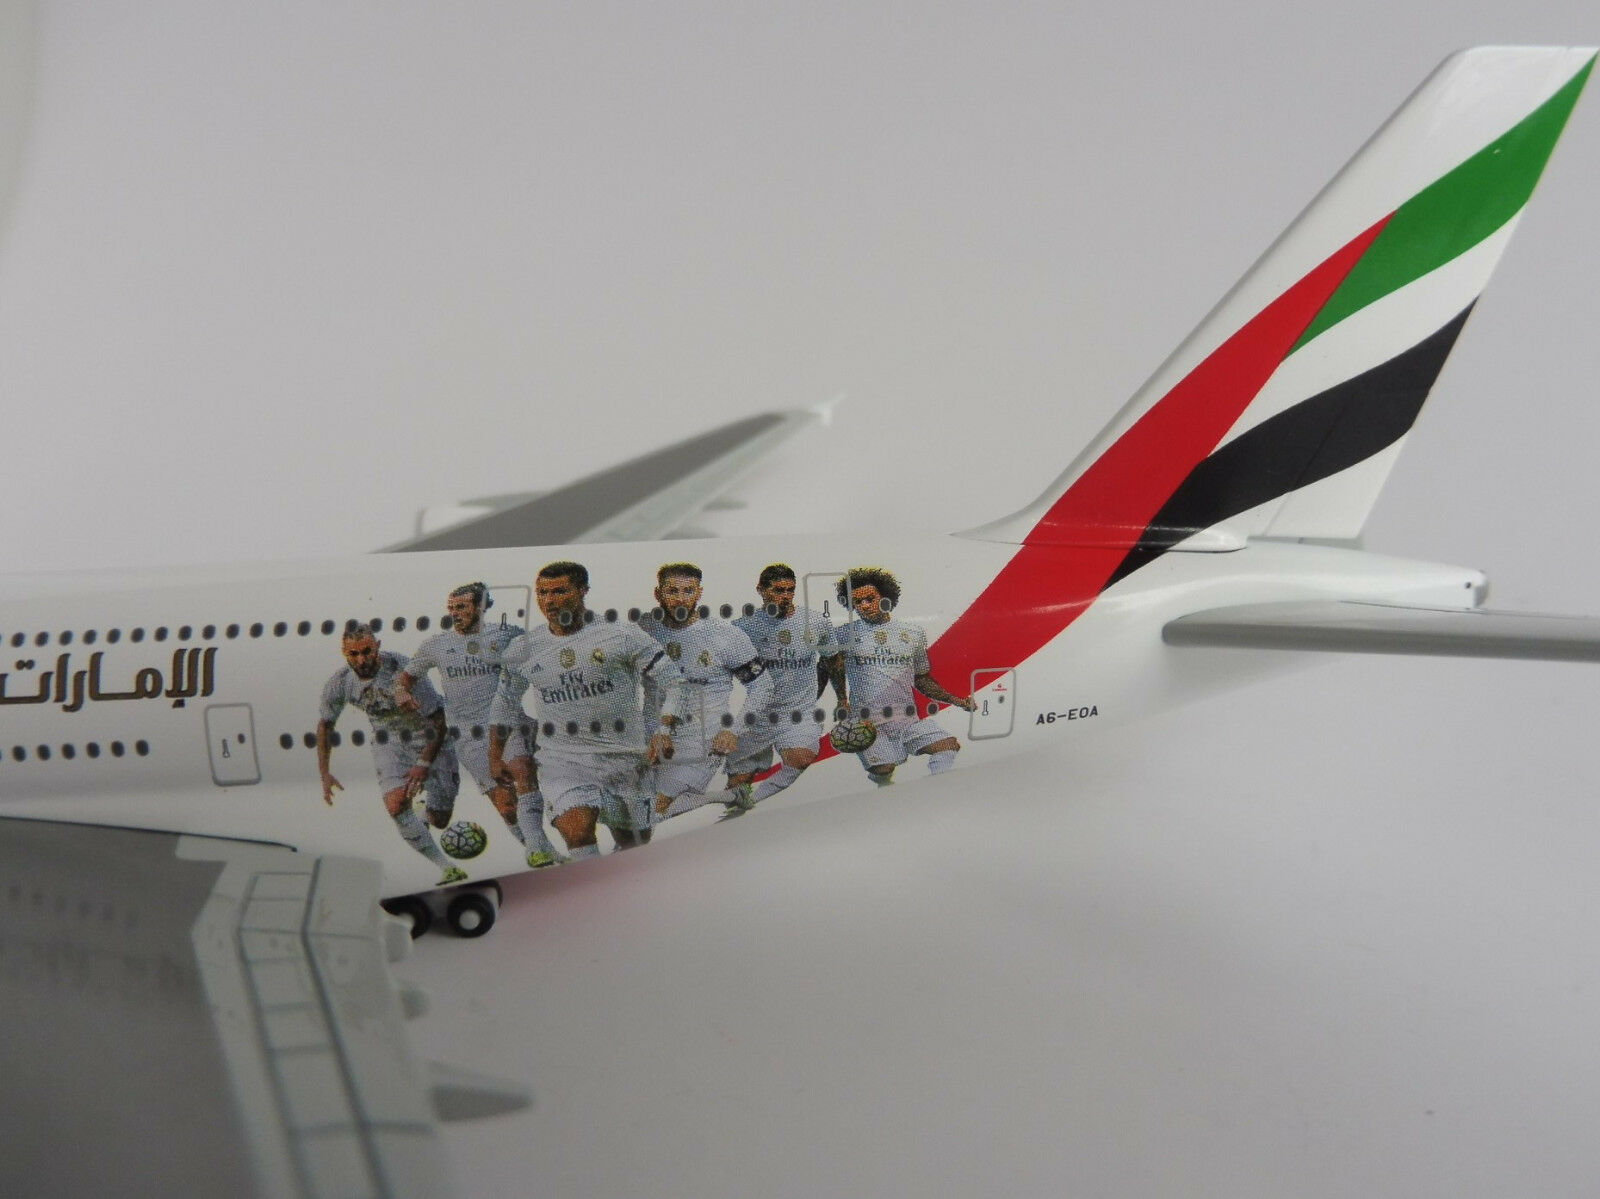 Emirates Airbus A380-800 Real Madrid 1 500 Herpa 529242 a 380 A380 A6-eoa